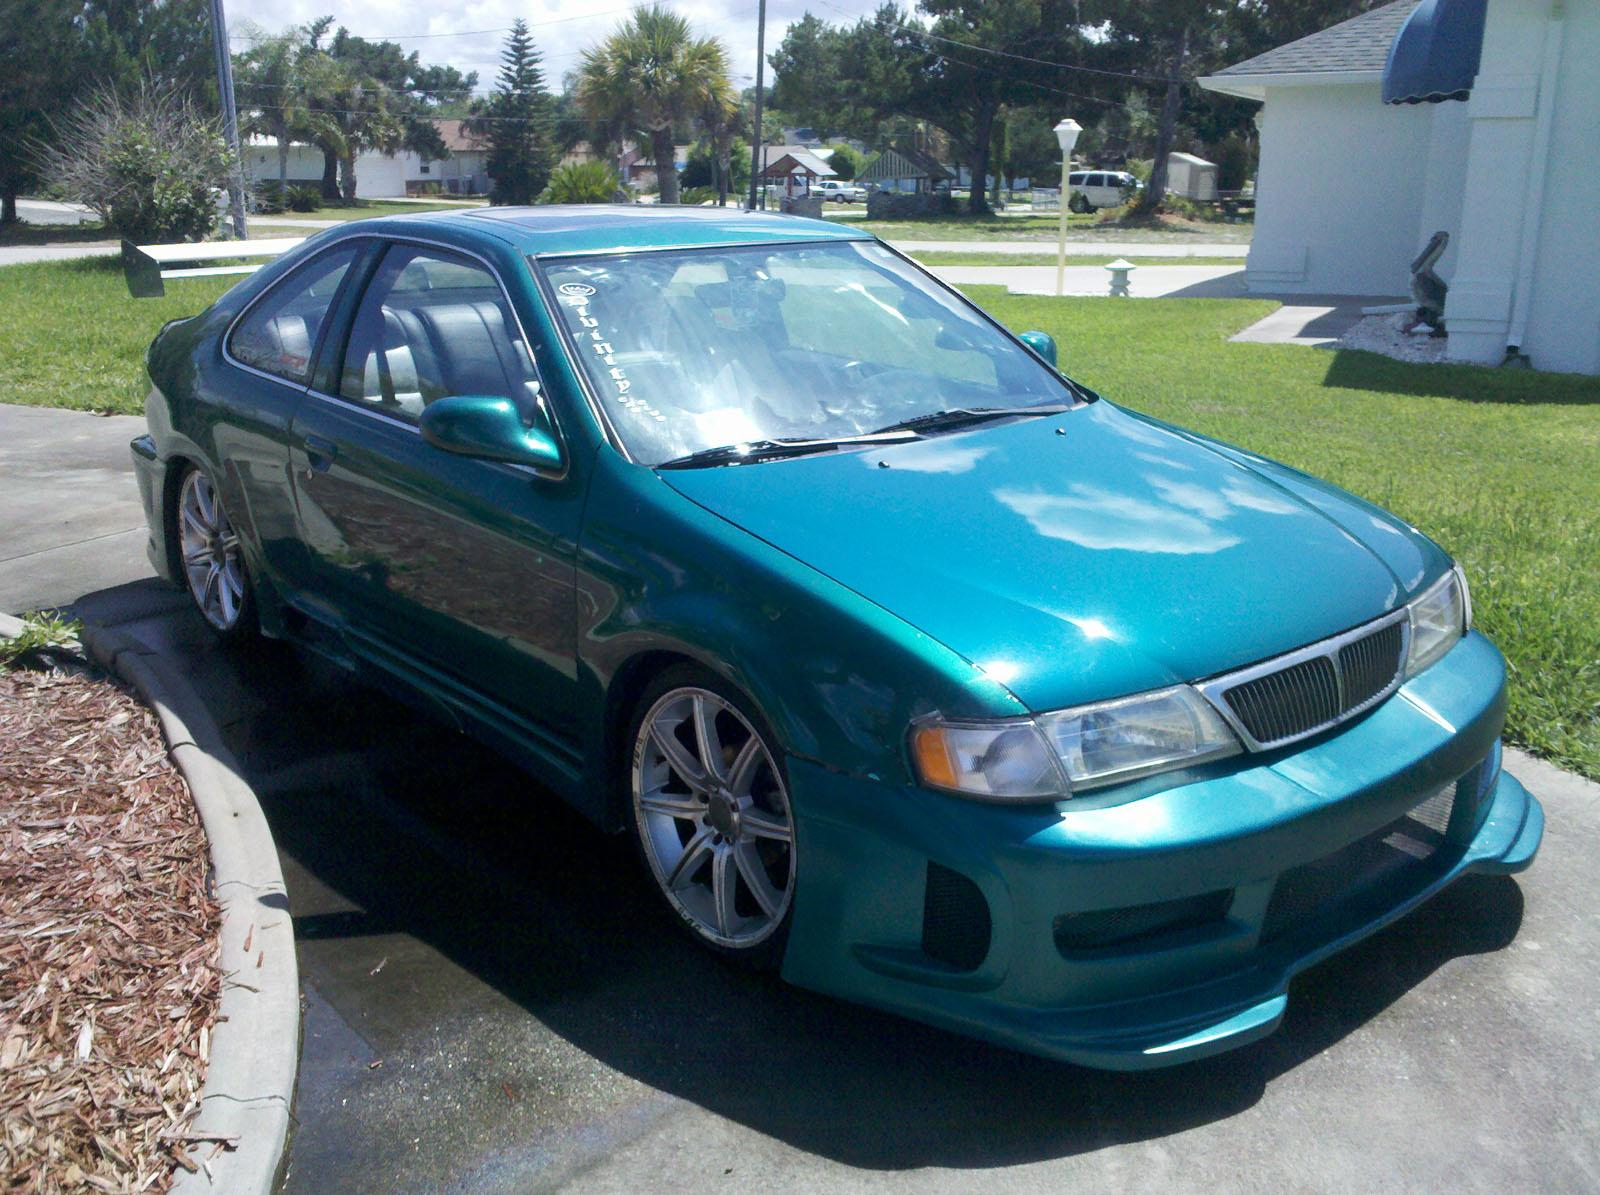 1995 Nissan 200SX - Information and photos - Zomb Drive